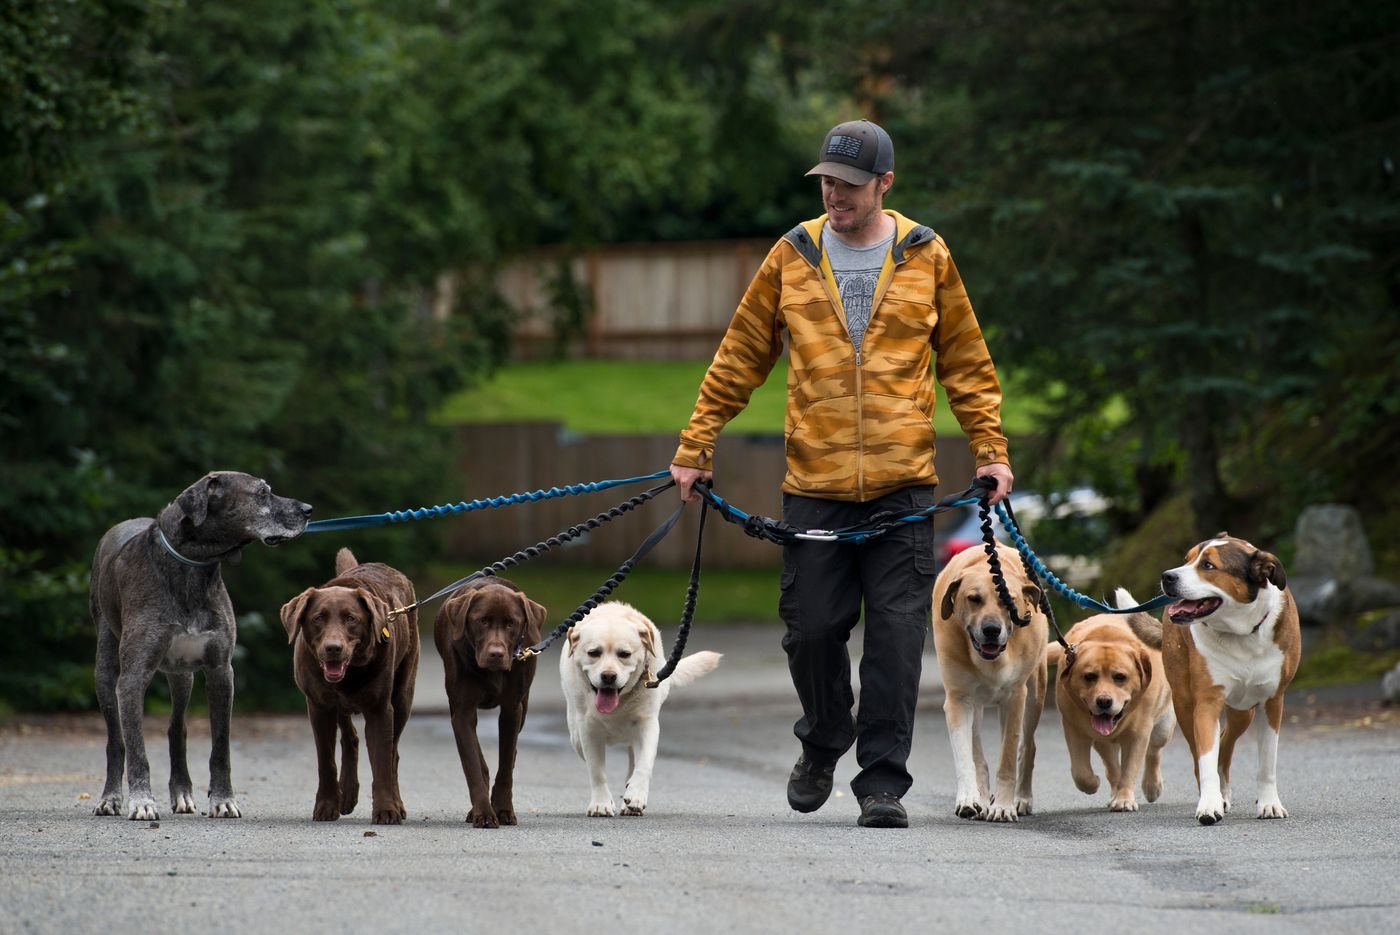 Courtney Hansen, owner of the Dog's Best Friend walking service, walks seven dogs in a neighborhood near Westchester Lagoon on August 23, 2017. (Marc Lester / Alaska Dispatch News)